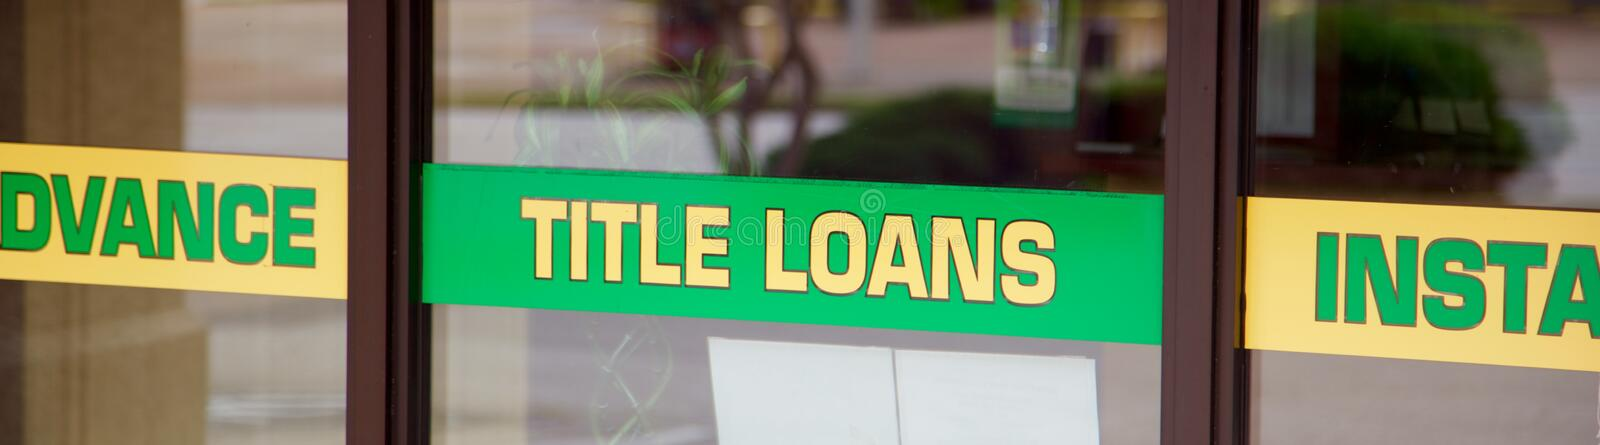 Title Loan Sign royalty free stock photography